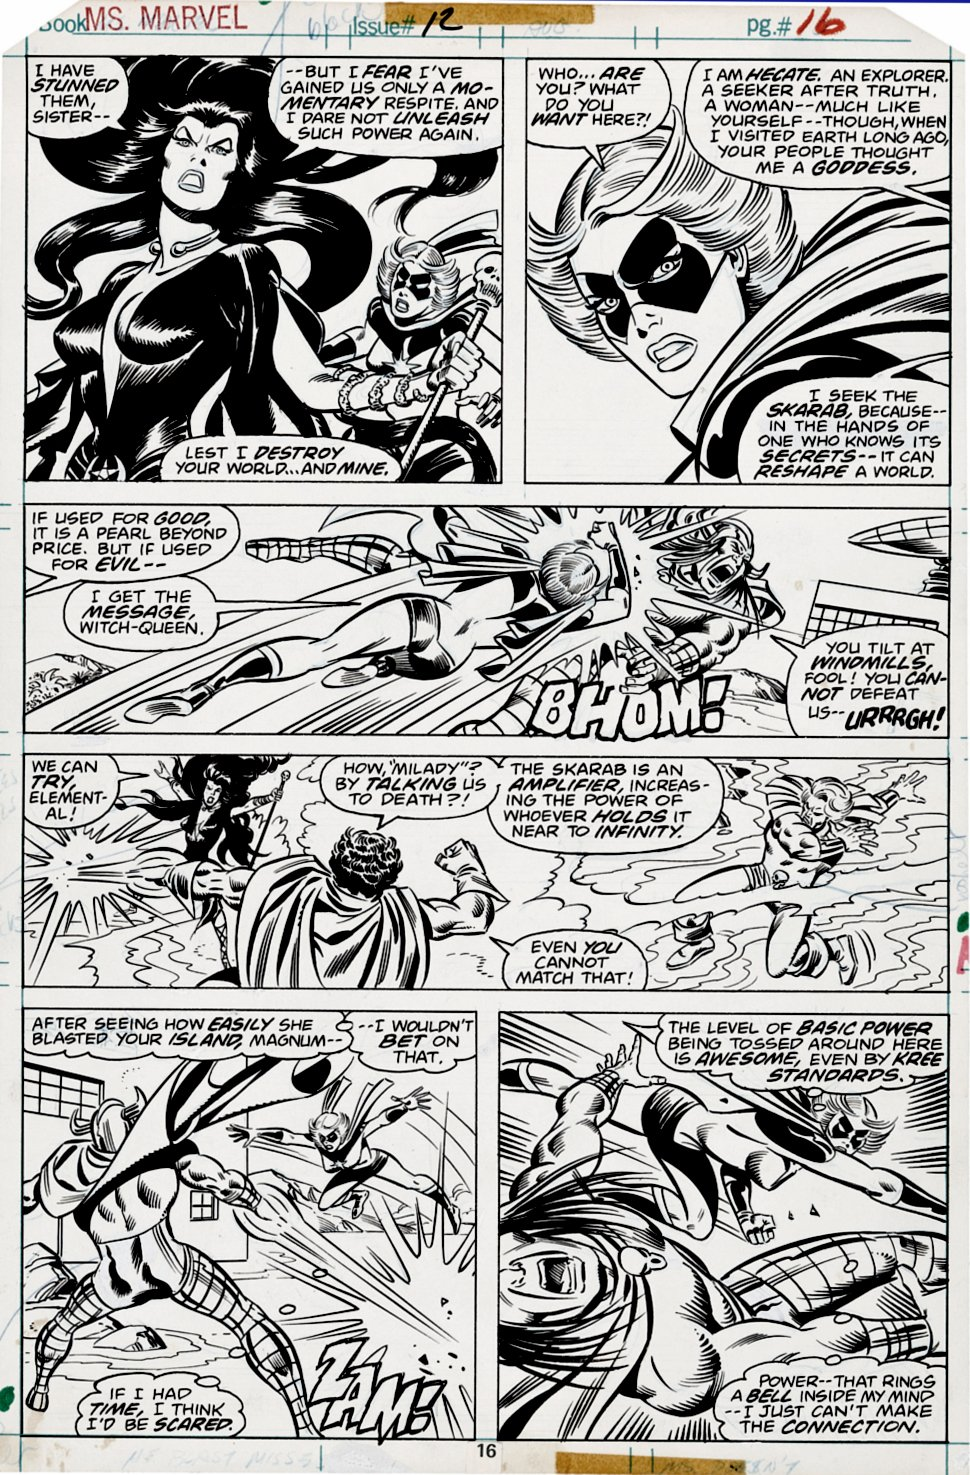 Ms. Marvel #12 p 16 (BEST BATTLE PG IN BOOK!) 1977